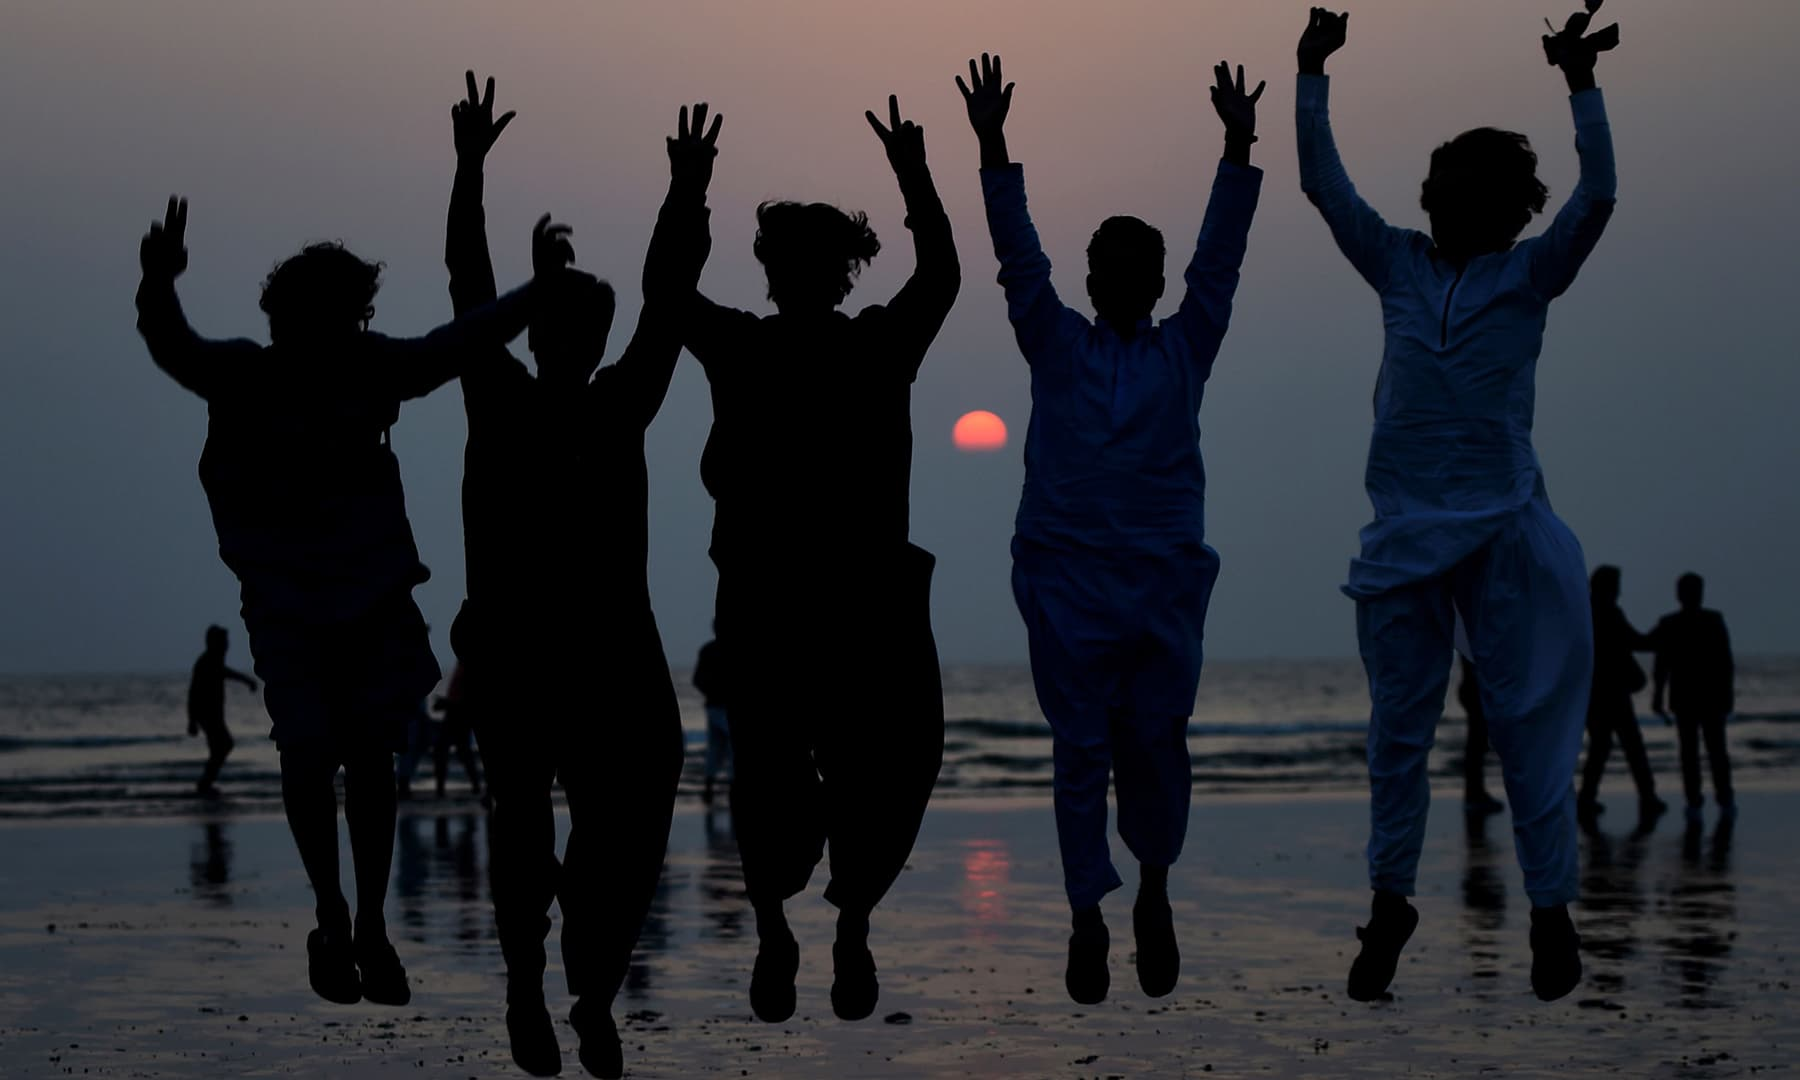 Youths jump for a picture during the last sunset of 2019, in Karachi on Tuesday. — AFP